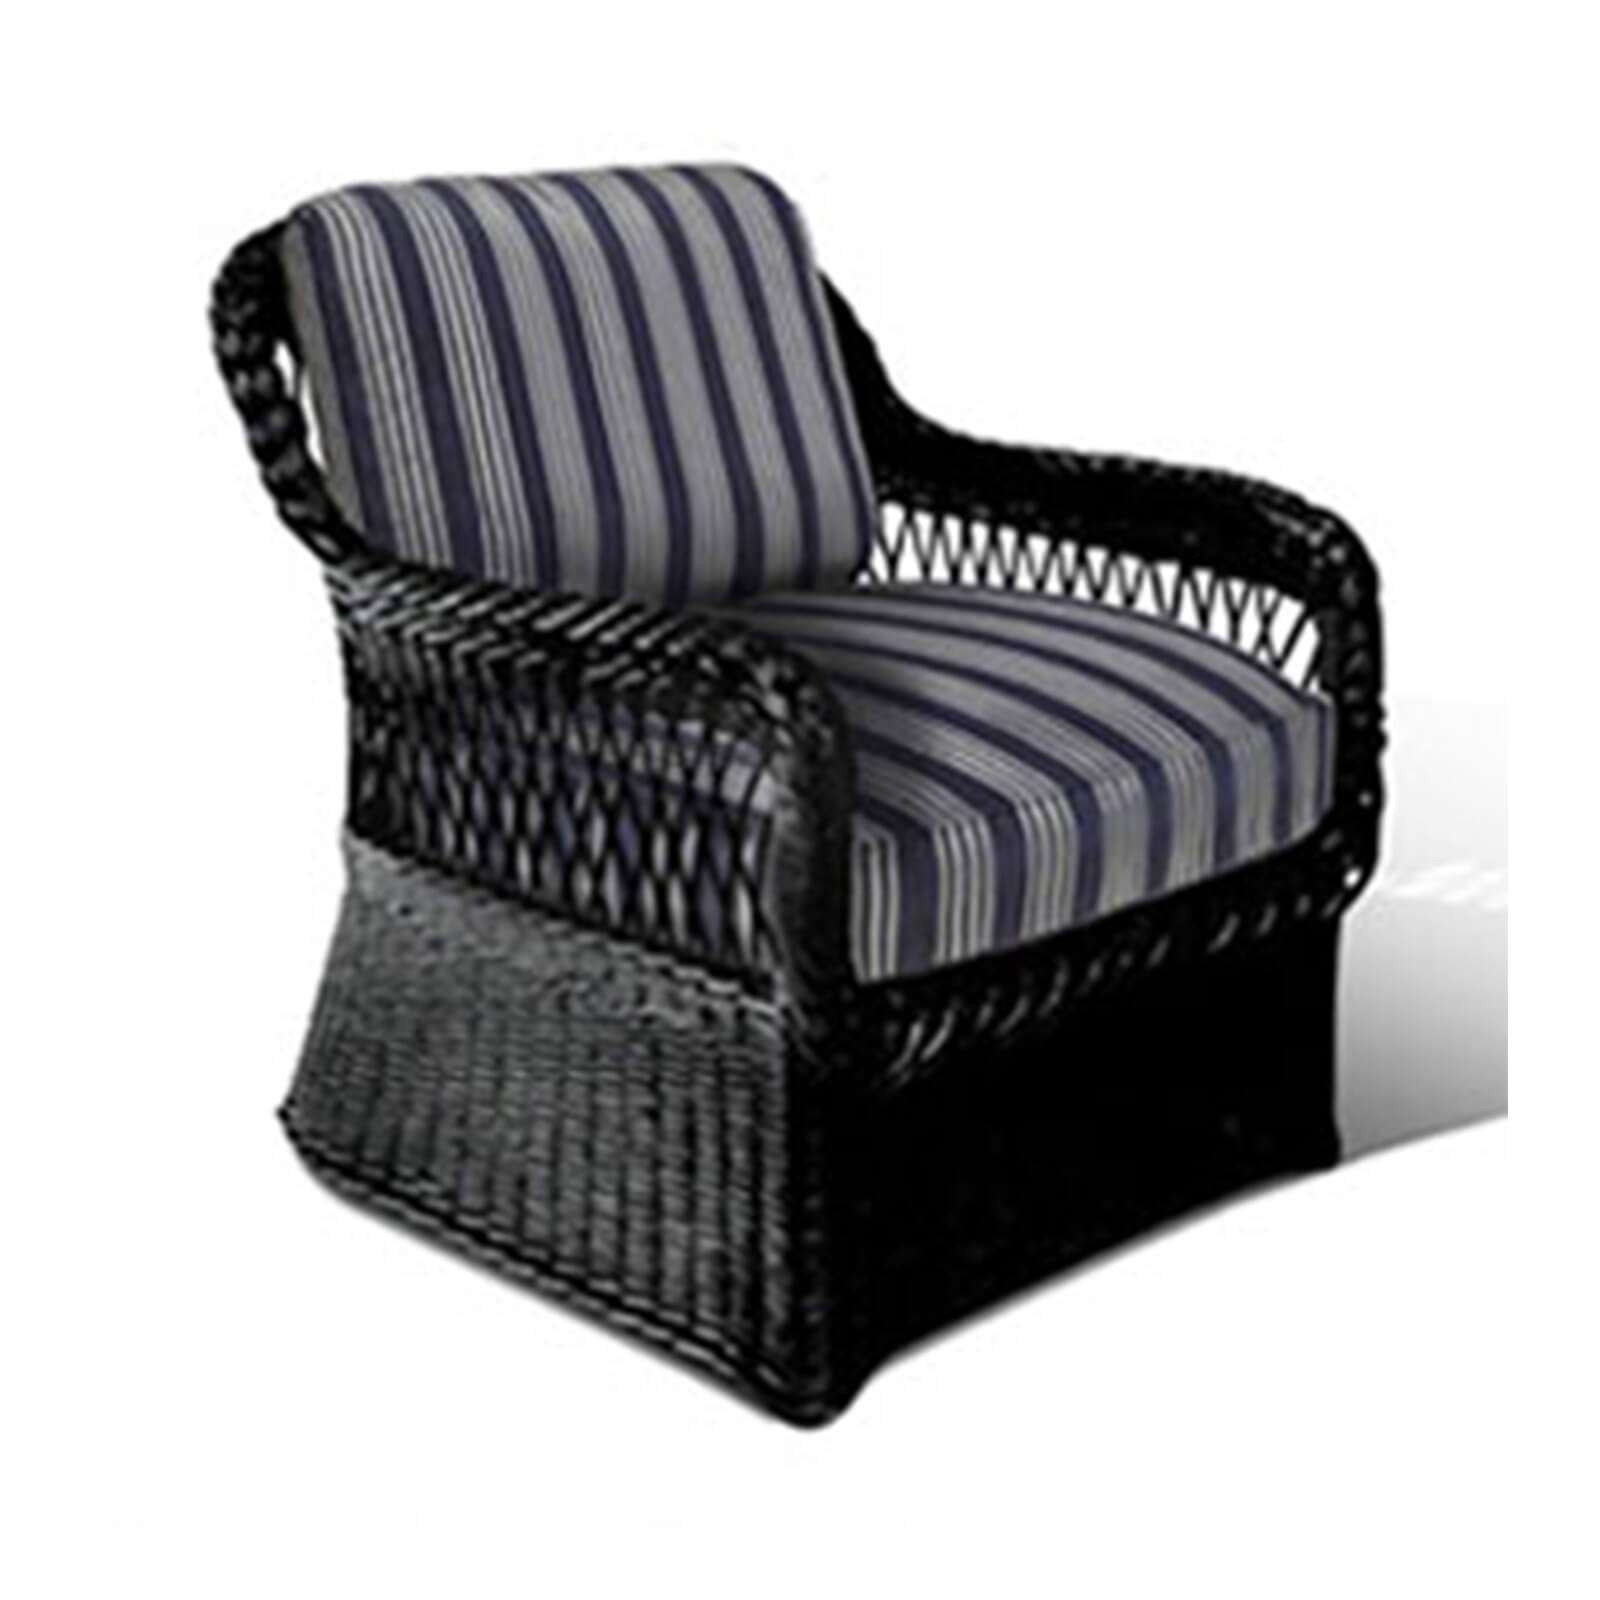 LAKE HOUSE WICKER CLUB CHAIR 2 - STUART MEMBERY HOME COLLECTION